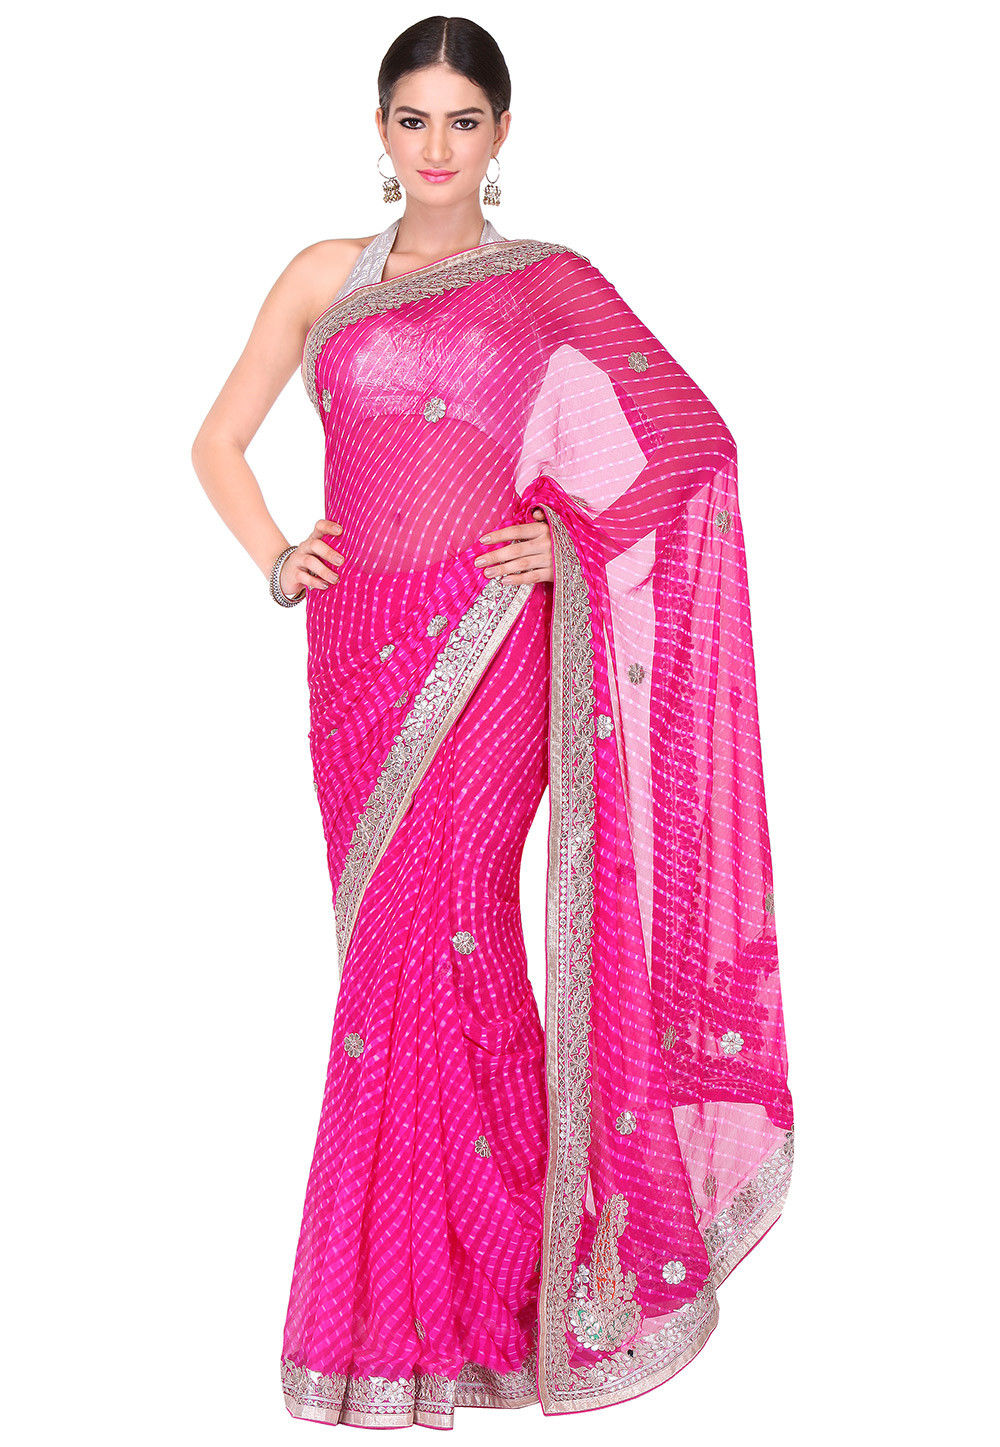 Embroidered Border Georgette Lehariya Saree in Pink